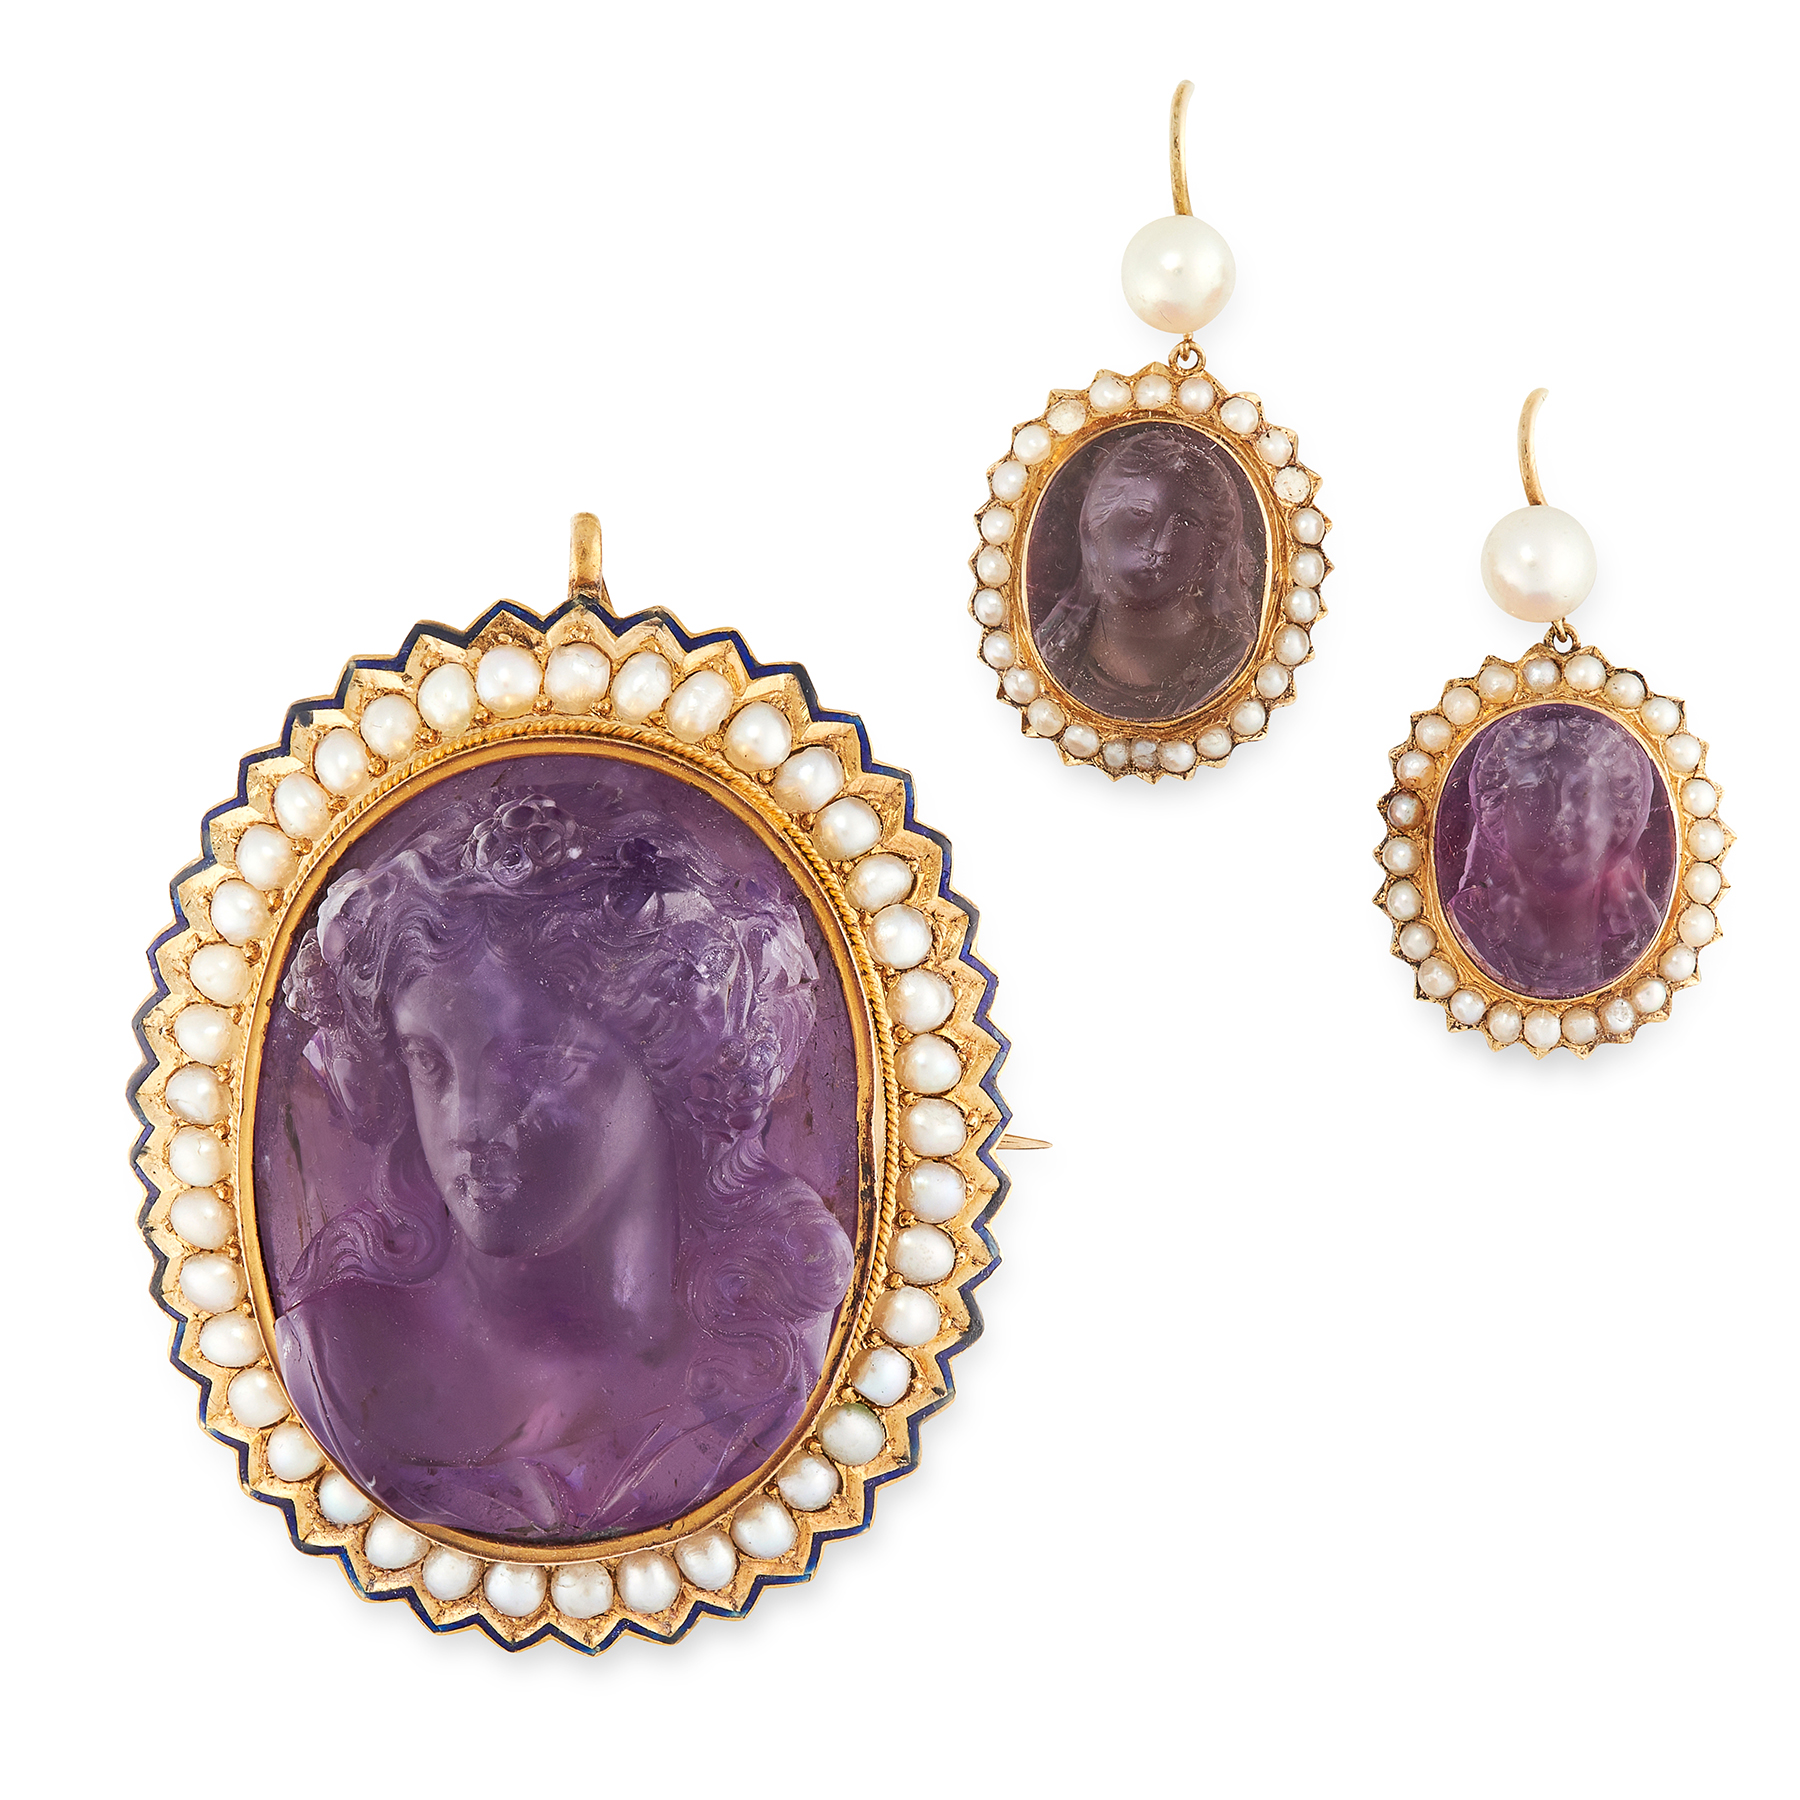 AN ANTIQUE AMETHYST CAMEO, PEARL AND ENAMEL BROOCH / PENDANT AND EARRINGS SUITE, 19TH CENTURY in